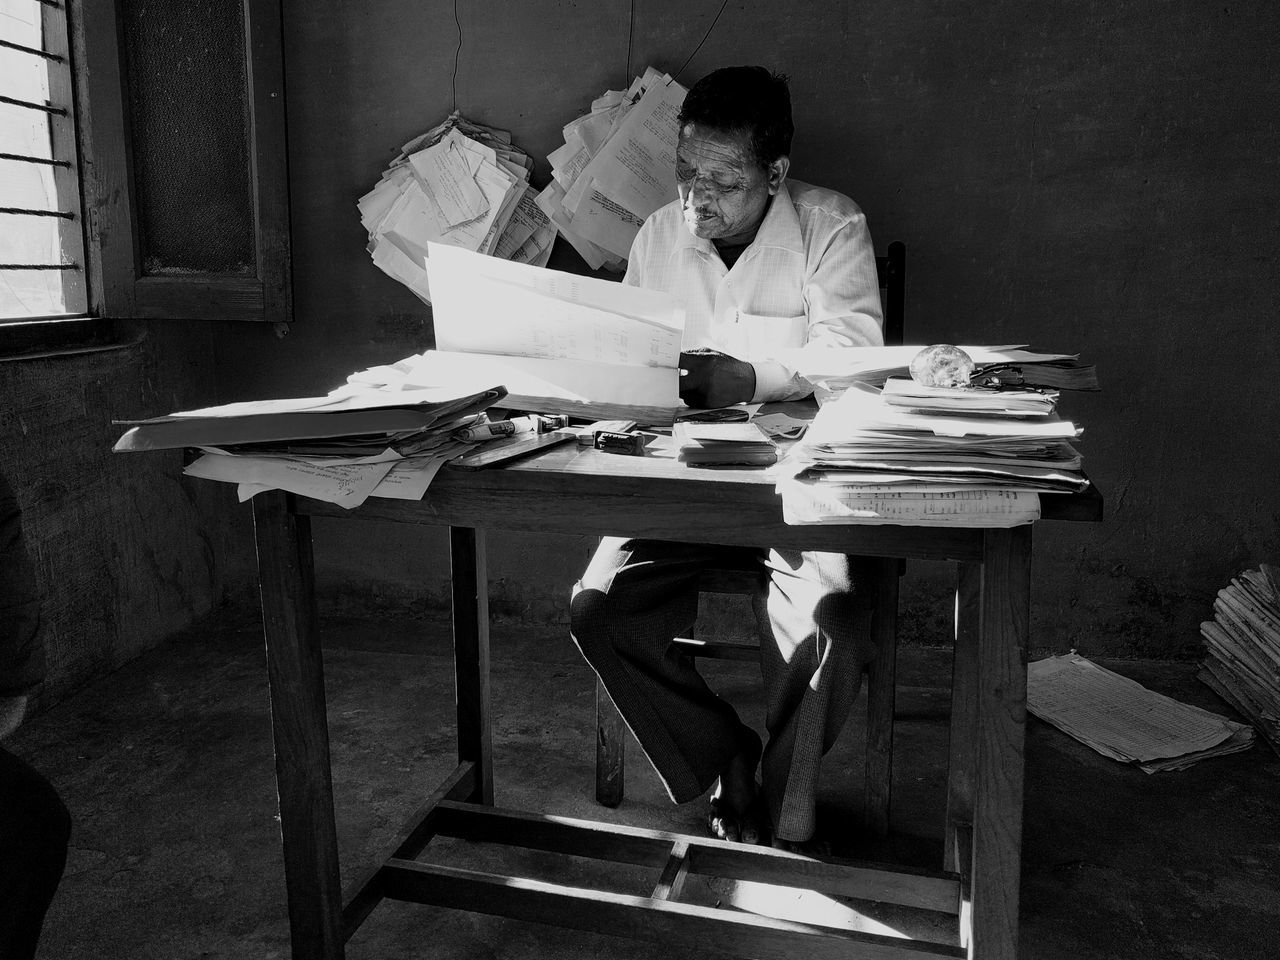 Archival Sitting One Man Only Chair One Person Table People Indoors  Occupation Day Food Service Occupation Only Men Paperwork Window Light Black & White Black And White Photography Portraits Oldtimer Black And White